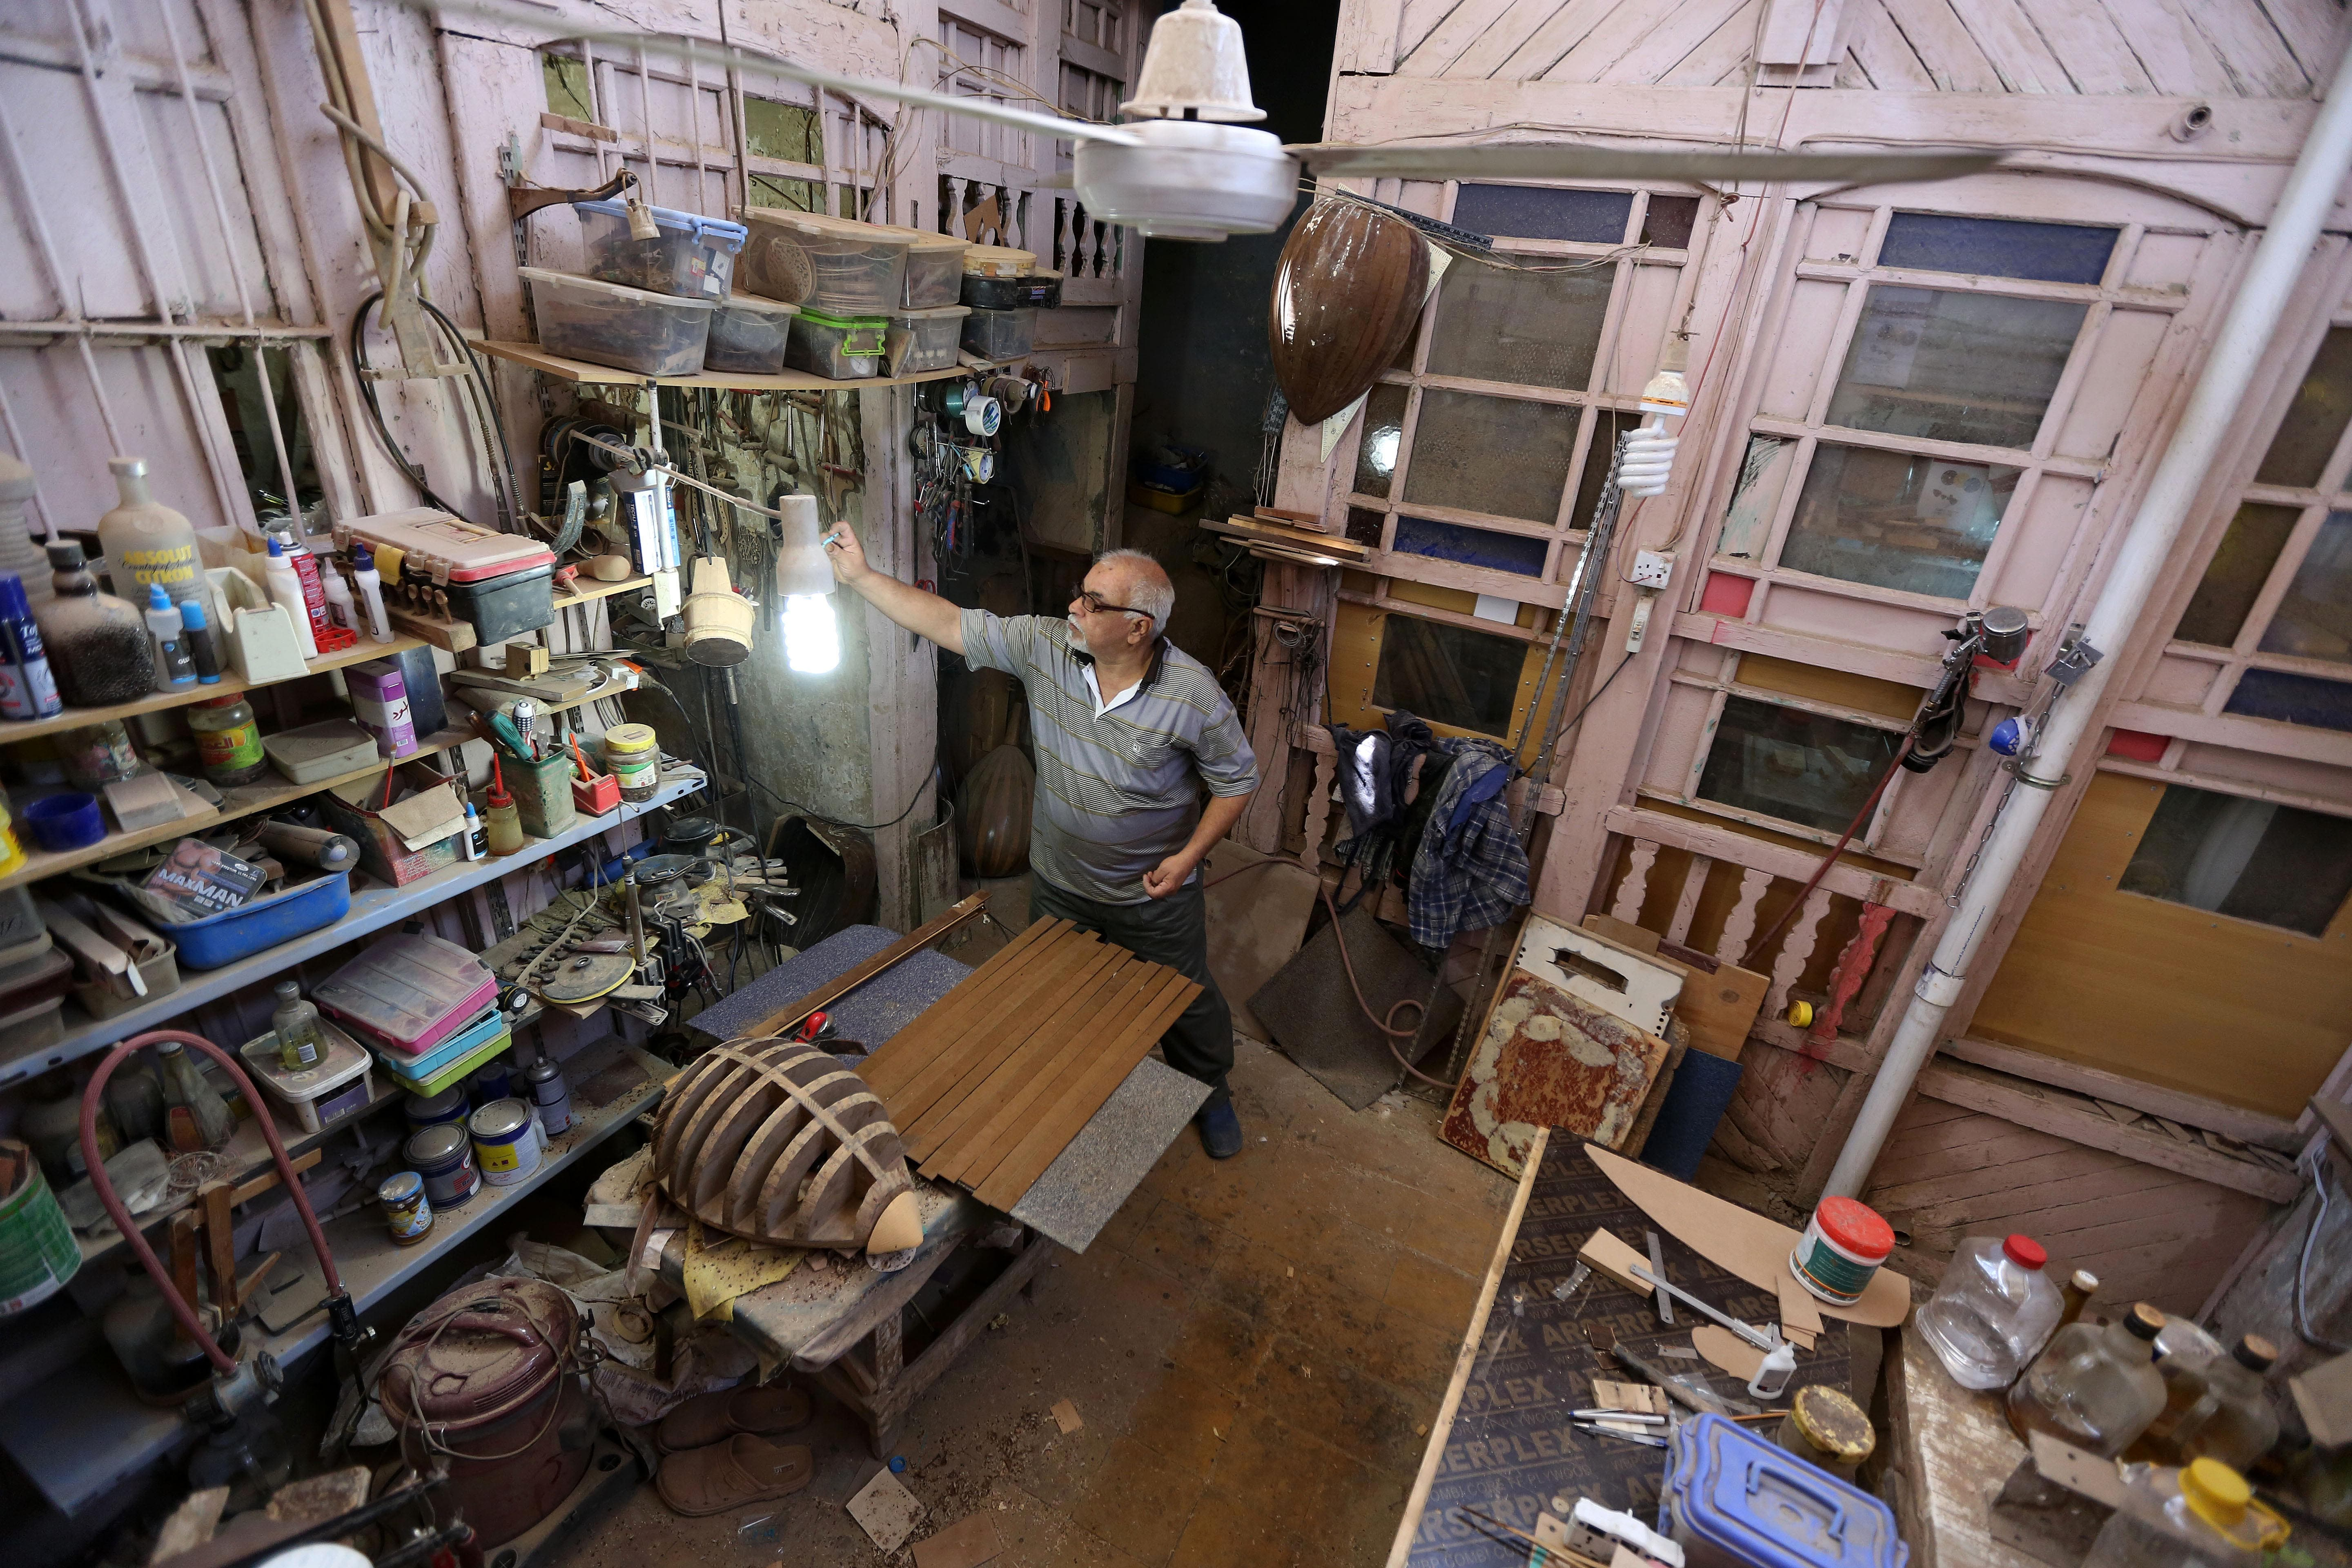 """In this photo taken Thursday, June 18, 2015, Oud maker Mahmoud Abdulnabi works in his shop in Baghdad, Iraq. Abdulnabi is one of the last craftsmen in Baghdad who carves ouds by hand. """"Our brothers, the makers in Syria, Turkey and Egypt, might produce 12 pieces a day"""" using machines, Abdulnabi said. """"We produce one or two pieces in a month."""" (AP Photo/Hadi Mizban)"""